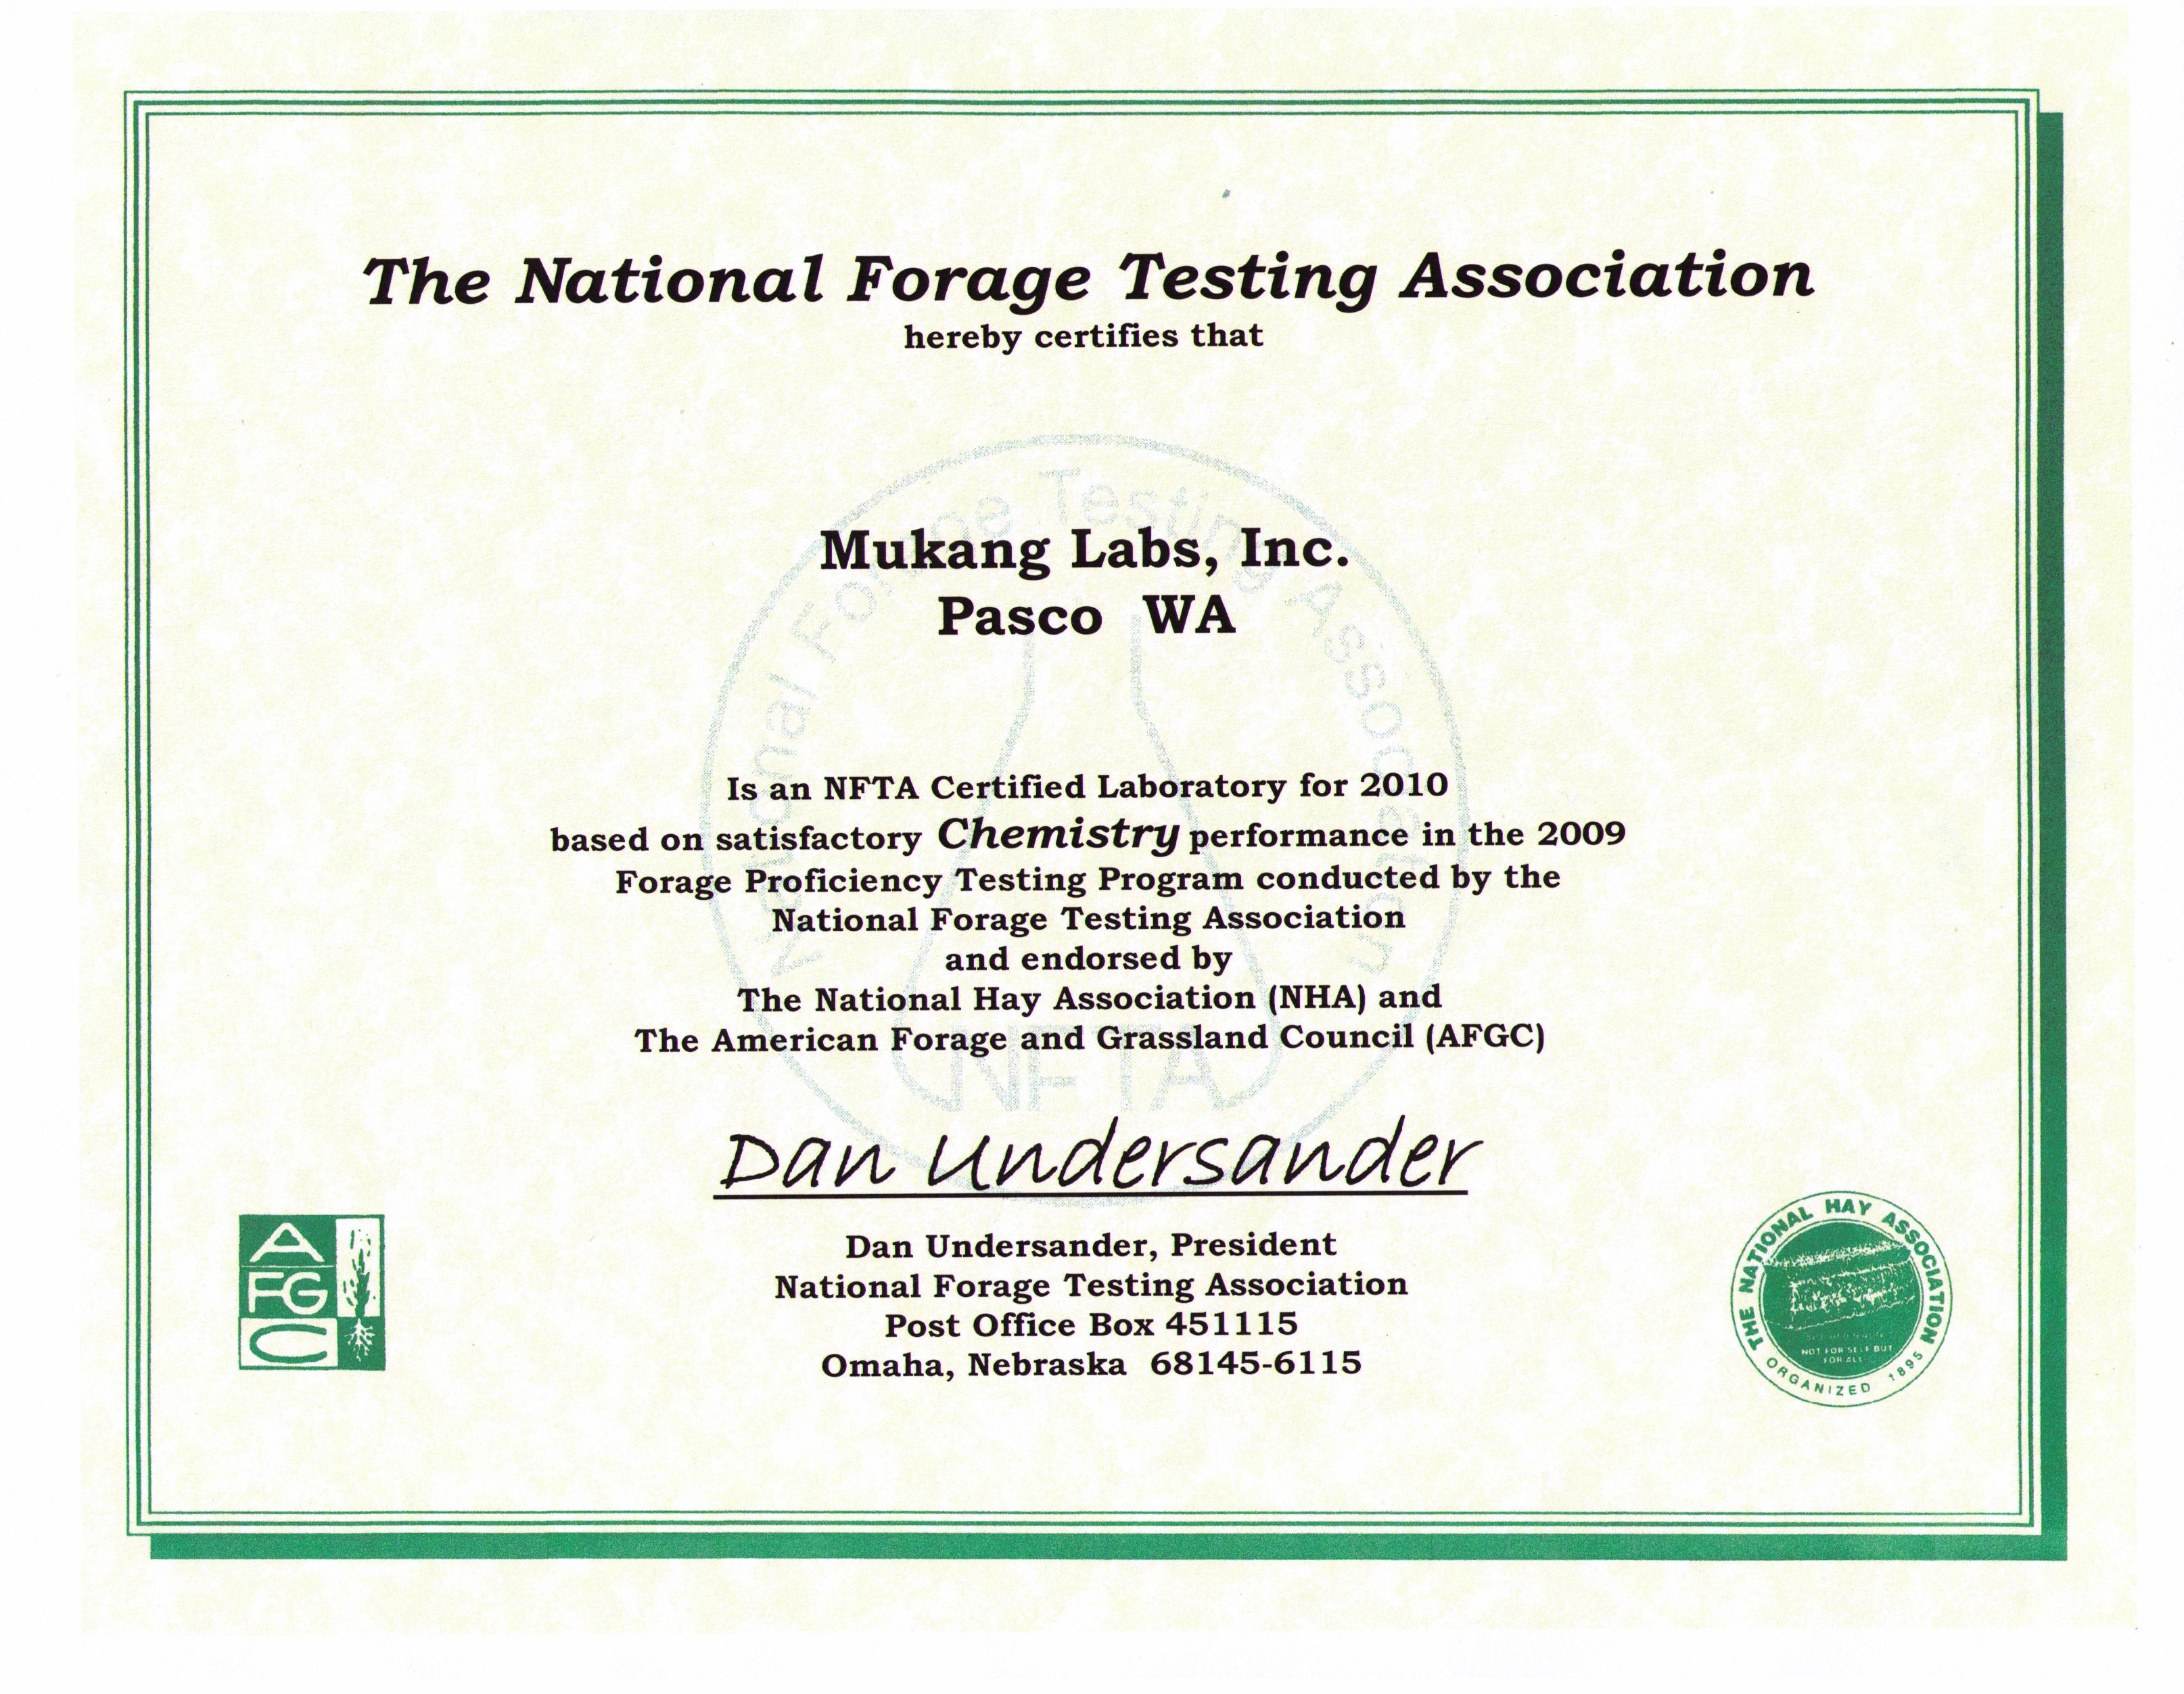 Mukang labs qaqc here is our certificate for forage alfalfa grass corn silage etc testing from the national forage testing association nfta and endorsed by the yelopaper Images